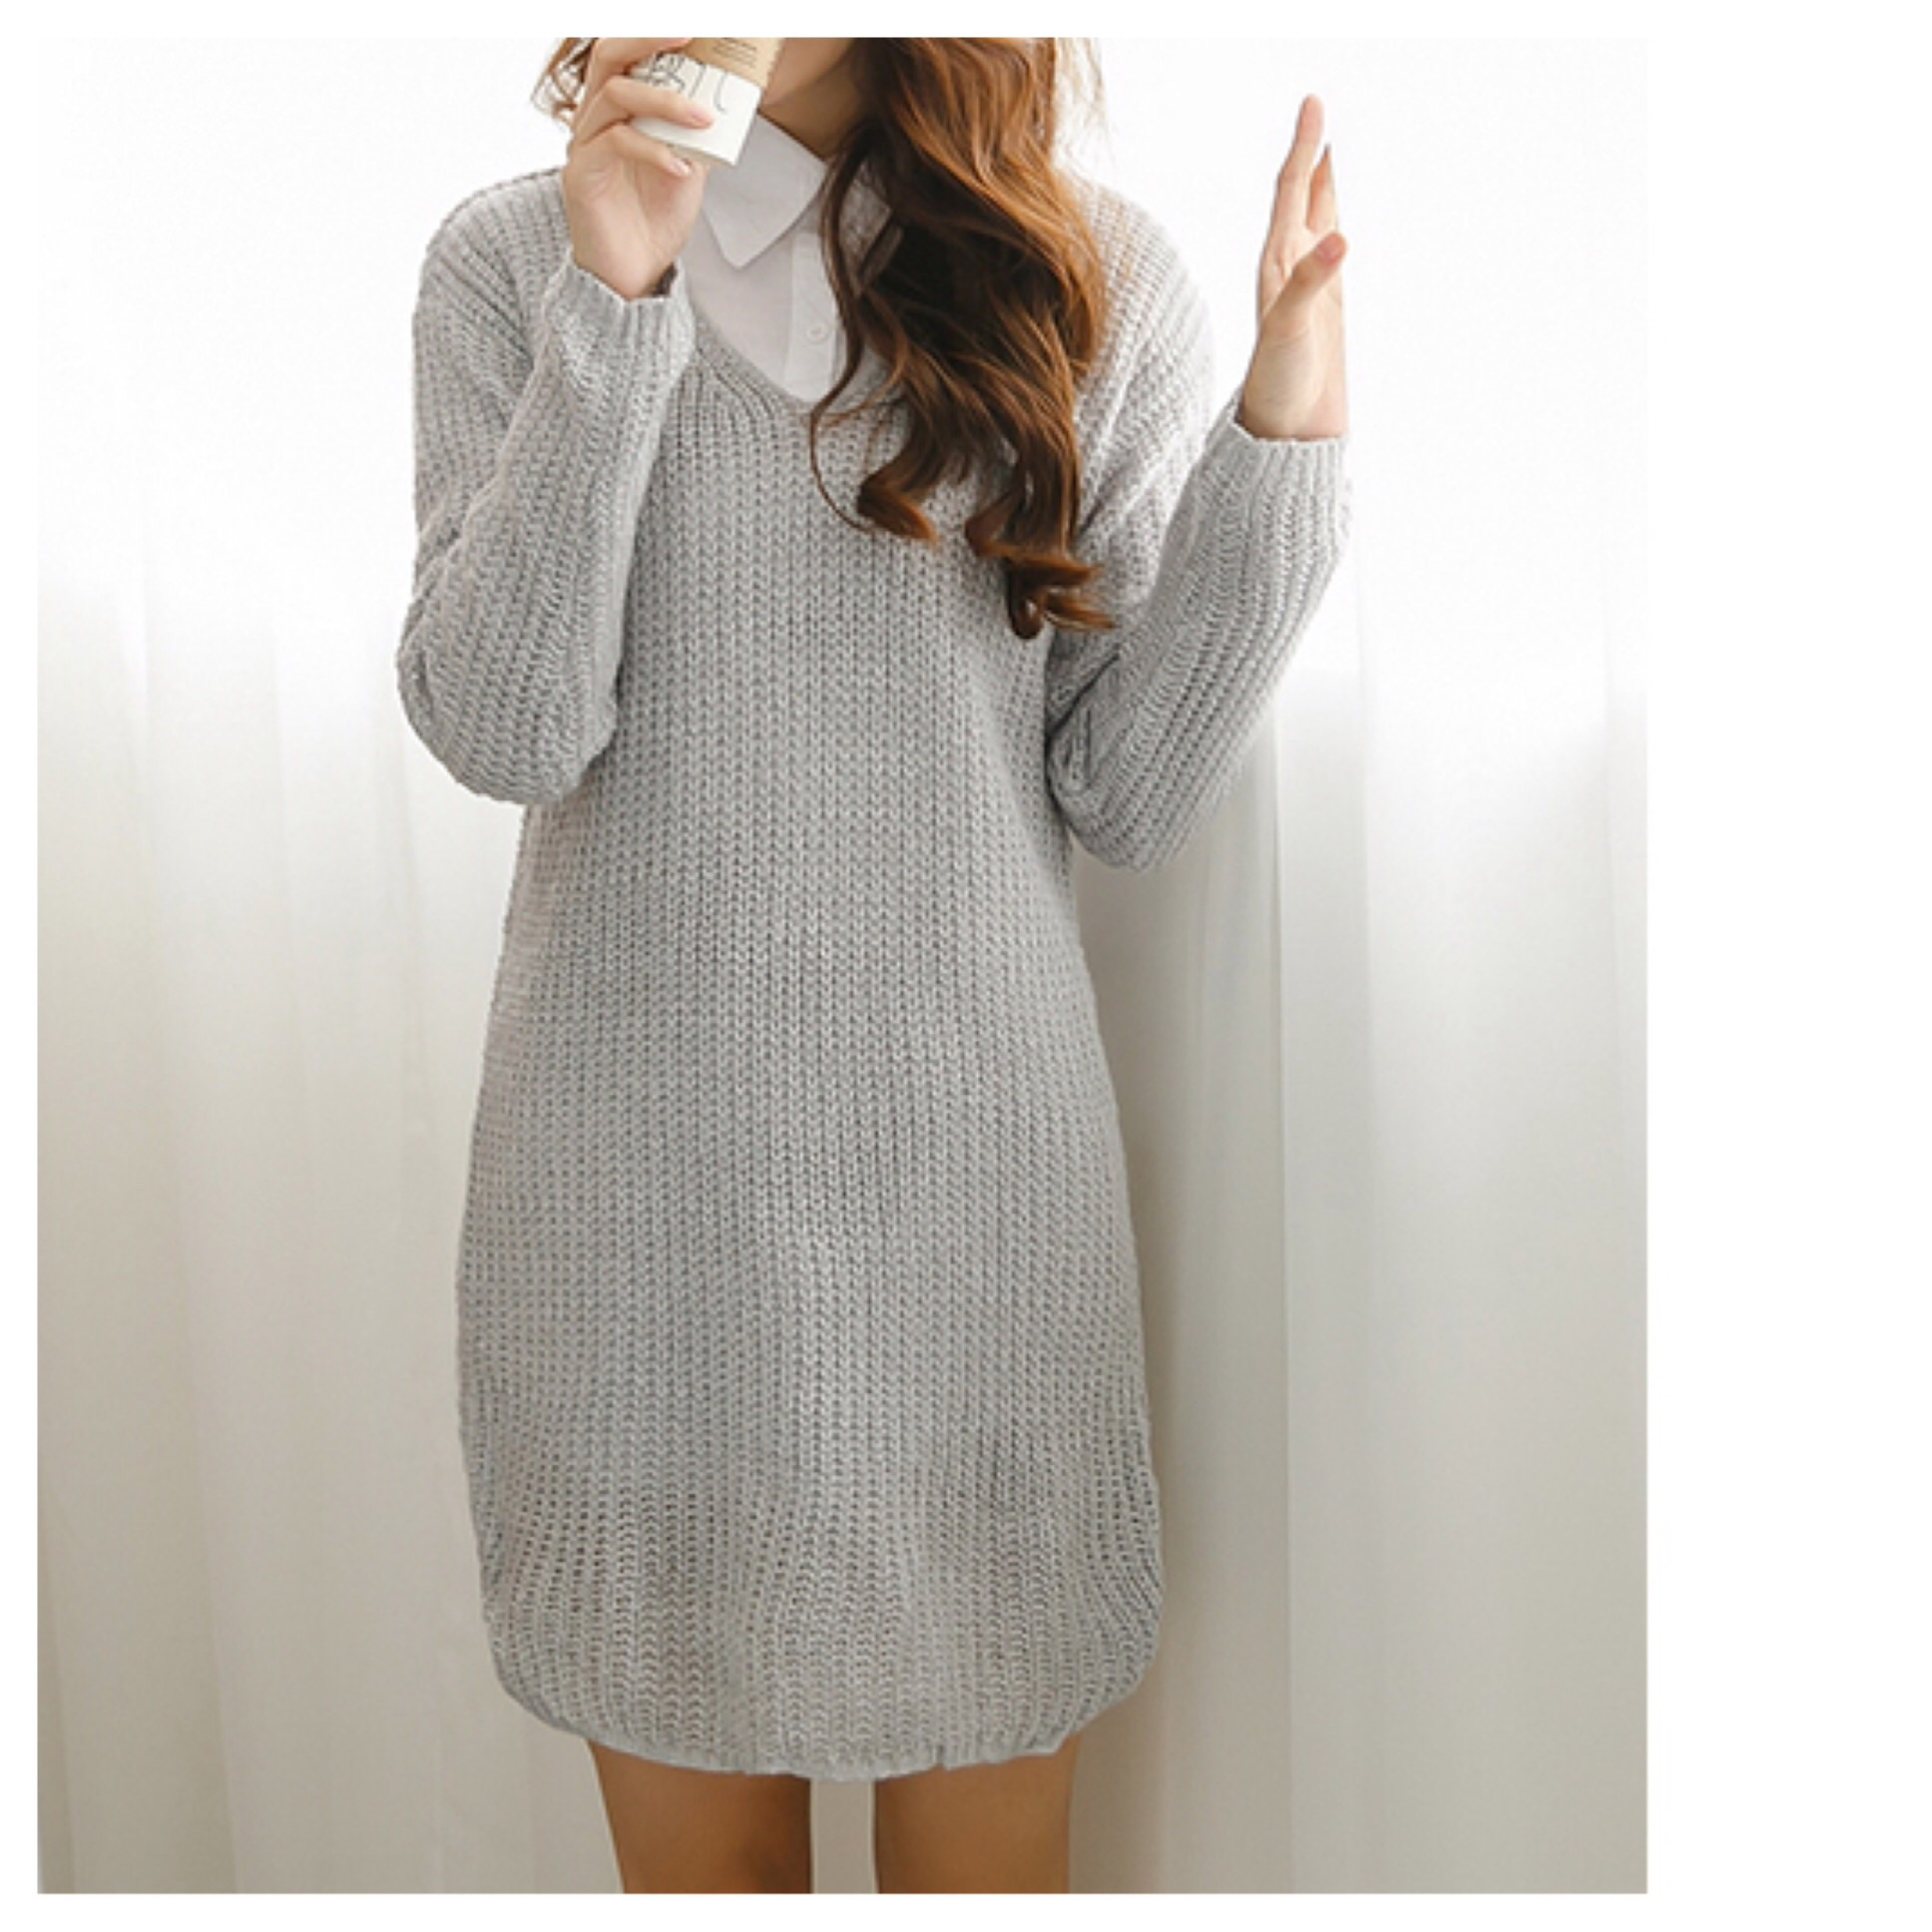 Amelia sweater dress from doublelw on storenvy